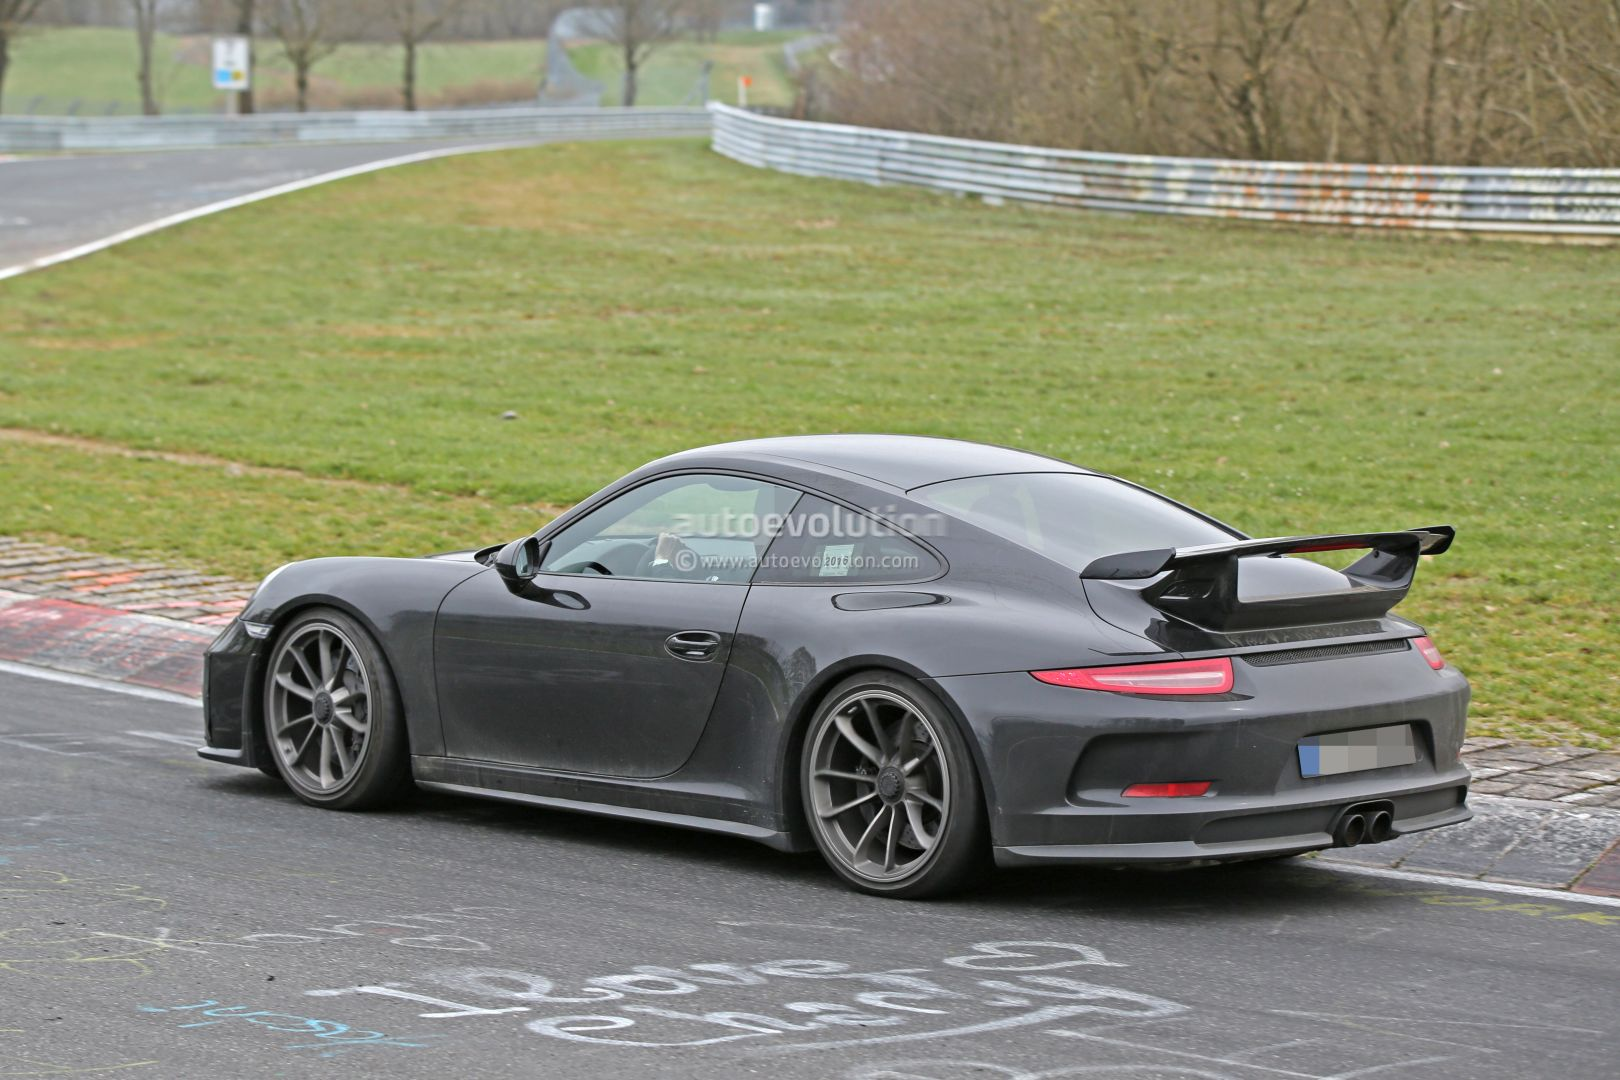 2017 porsche 911 gt3 spied on nurburgring  to get 911 r 6 speed manual as option autoevolution Ducati 998RS Ducati Dealers Michigan